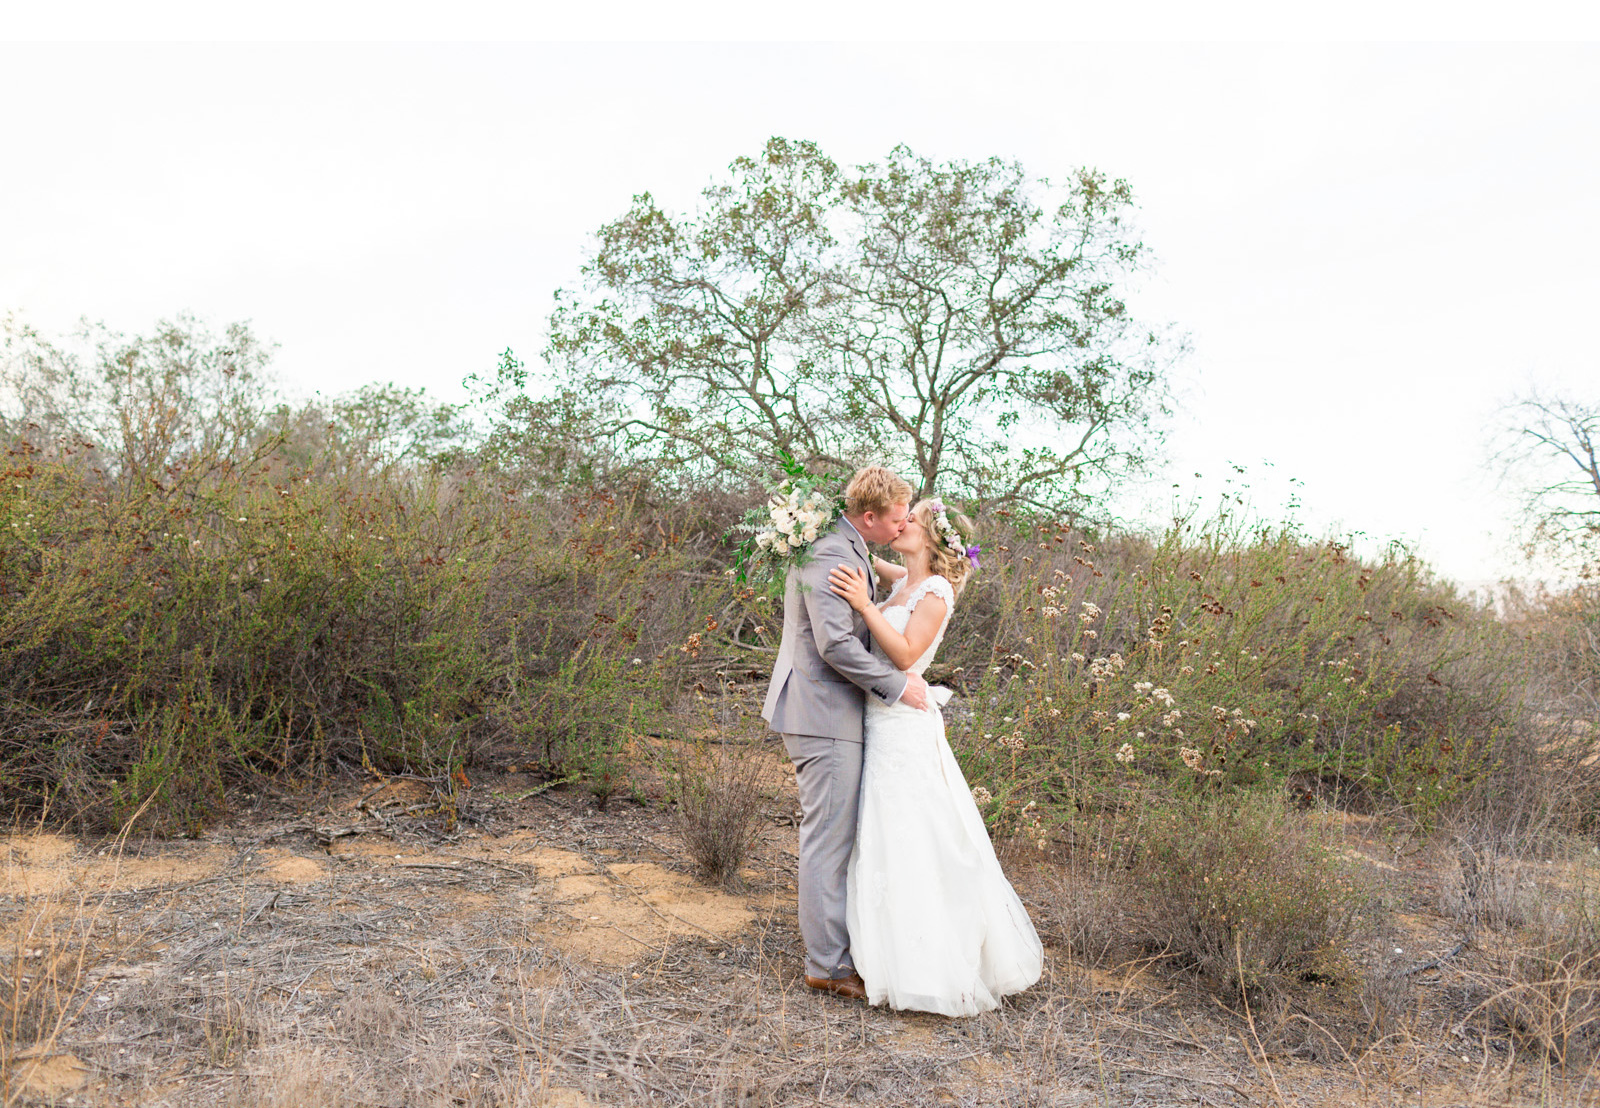 San-Diego-Wedding---N-Schutt-Photography_02.jpg